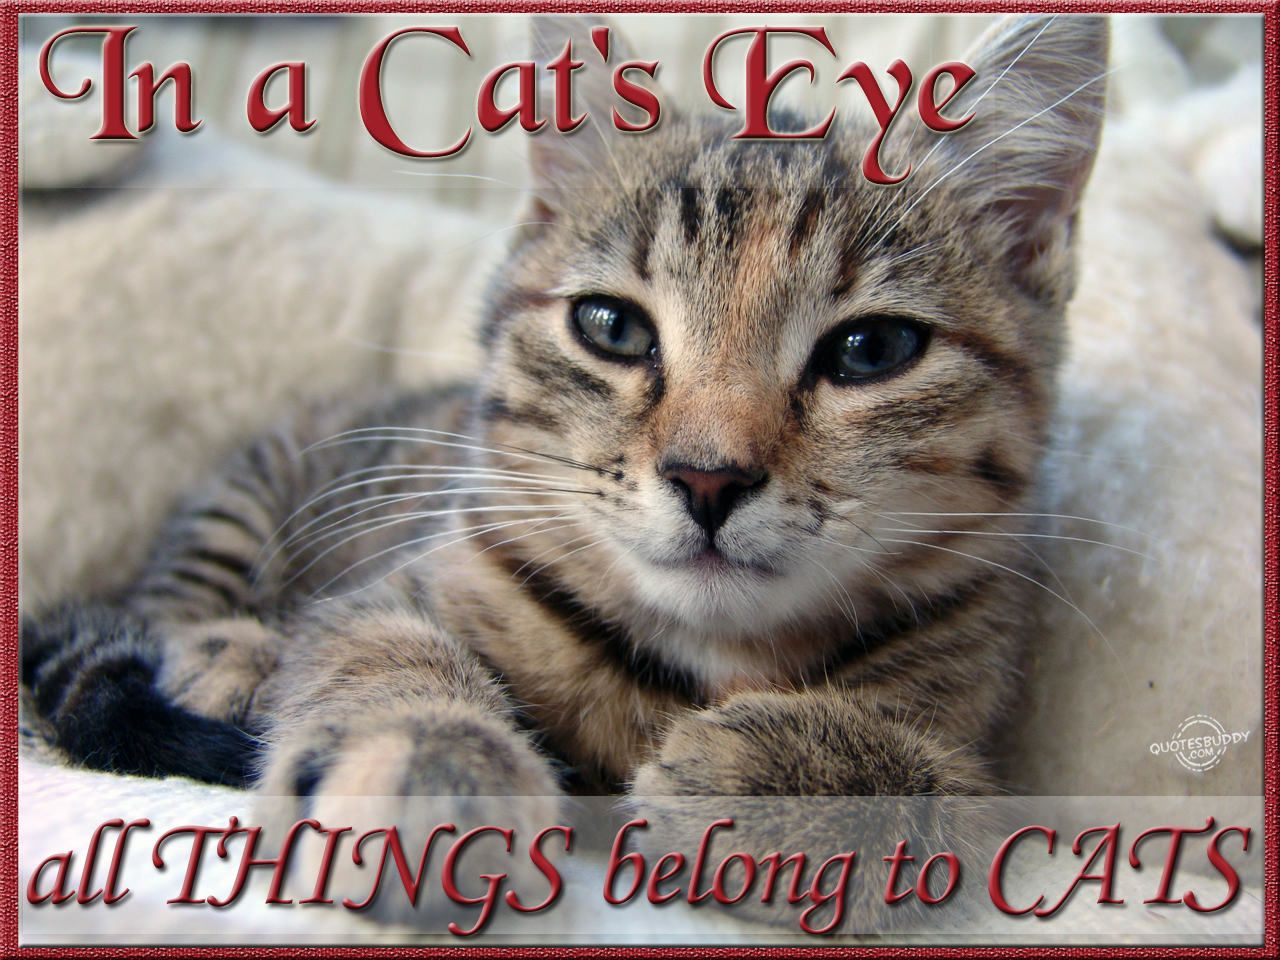 Quotes About Cats In A Cat's Eye All Things Belong To Cats  Kitty Stuff